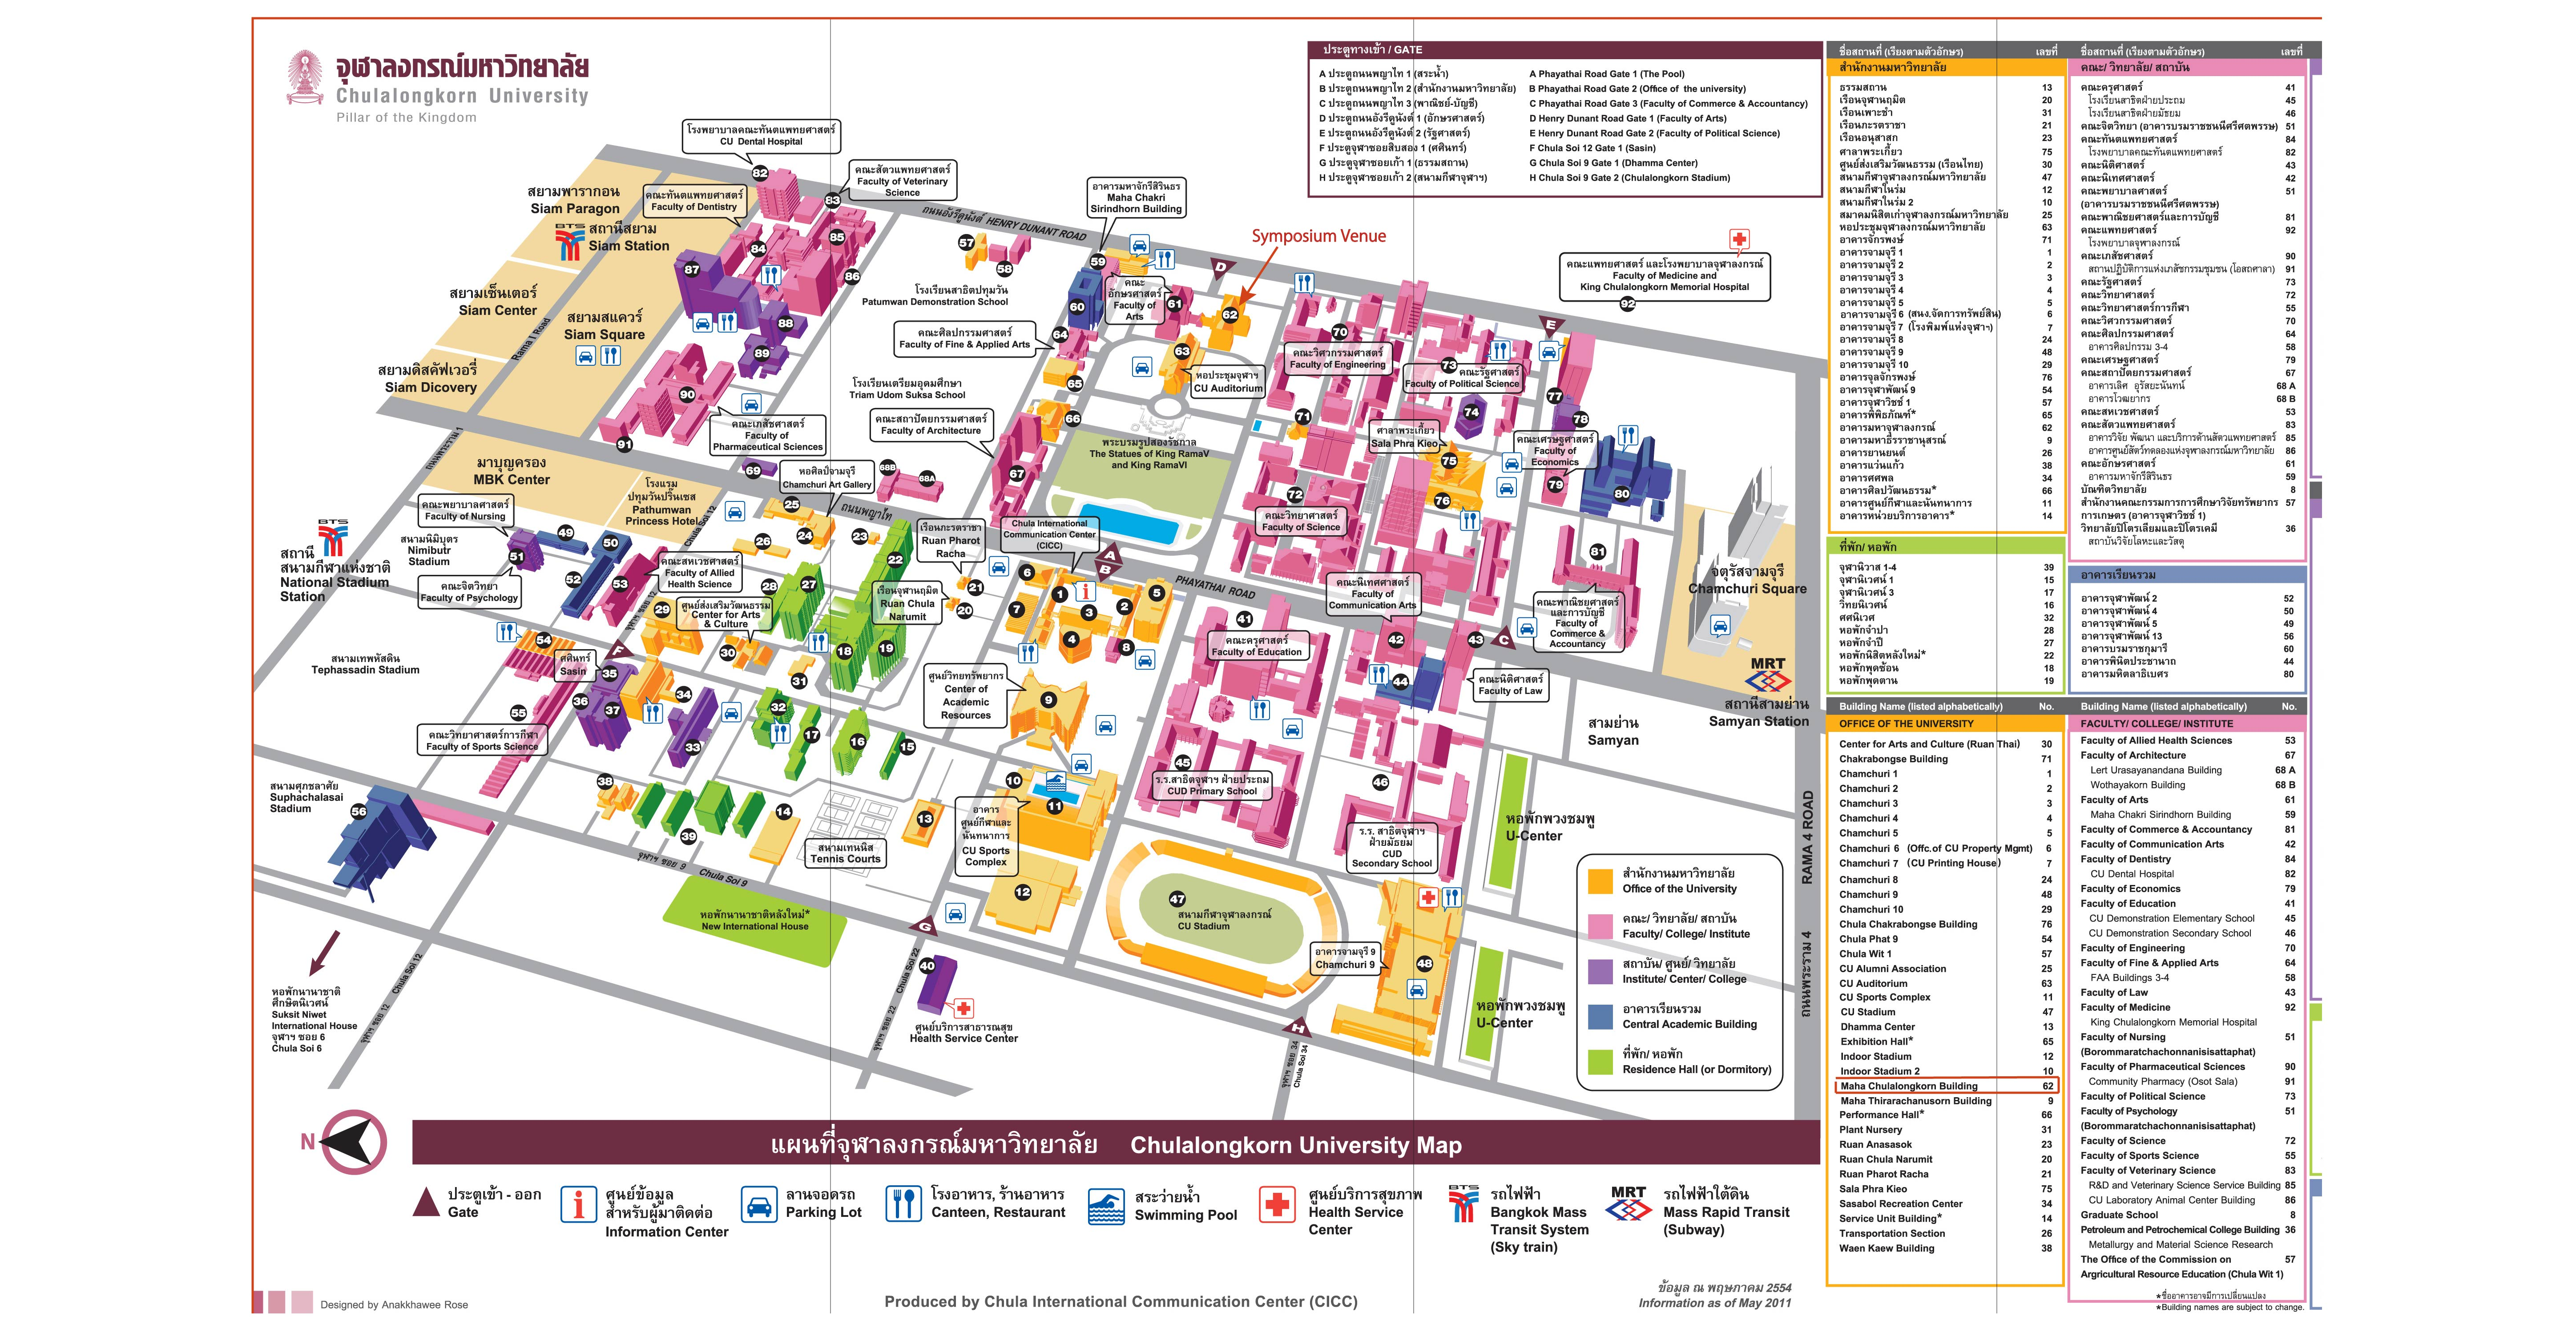 Chula medical library chulalongkorn university, faculty of medicine online journal list